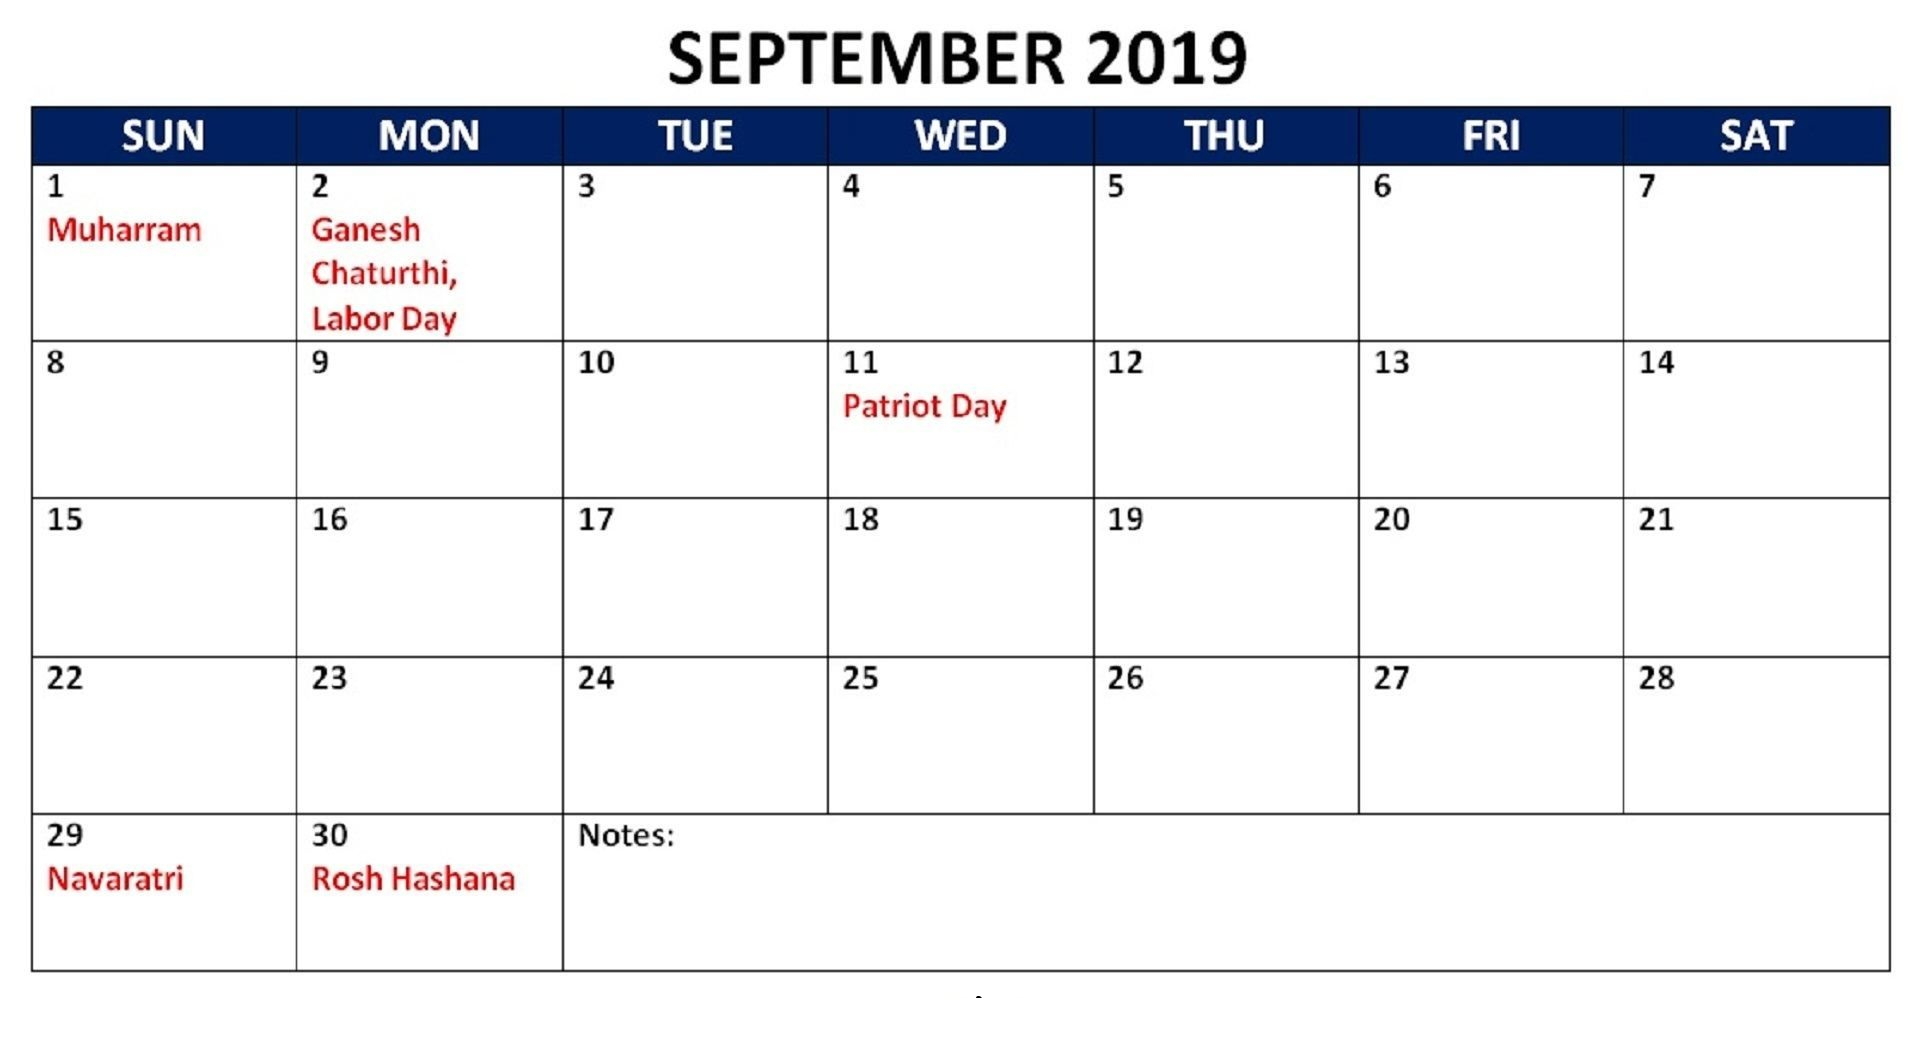 September 2019 Calendar With Holidays Public, National - Latest with regard to Free Printable September Blank Calendars With Christian Themes